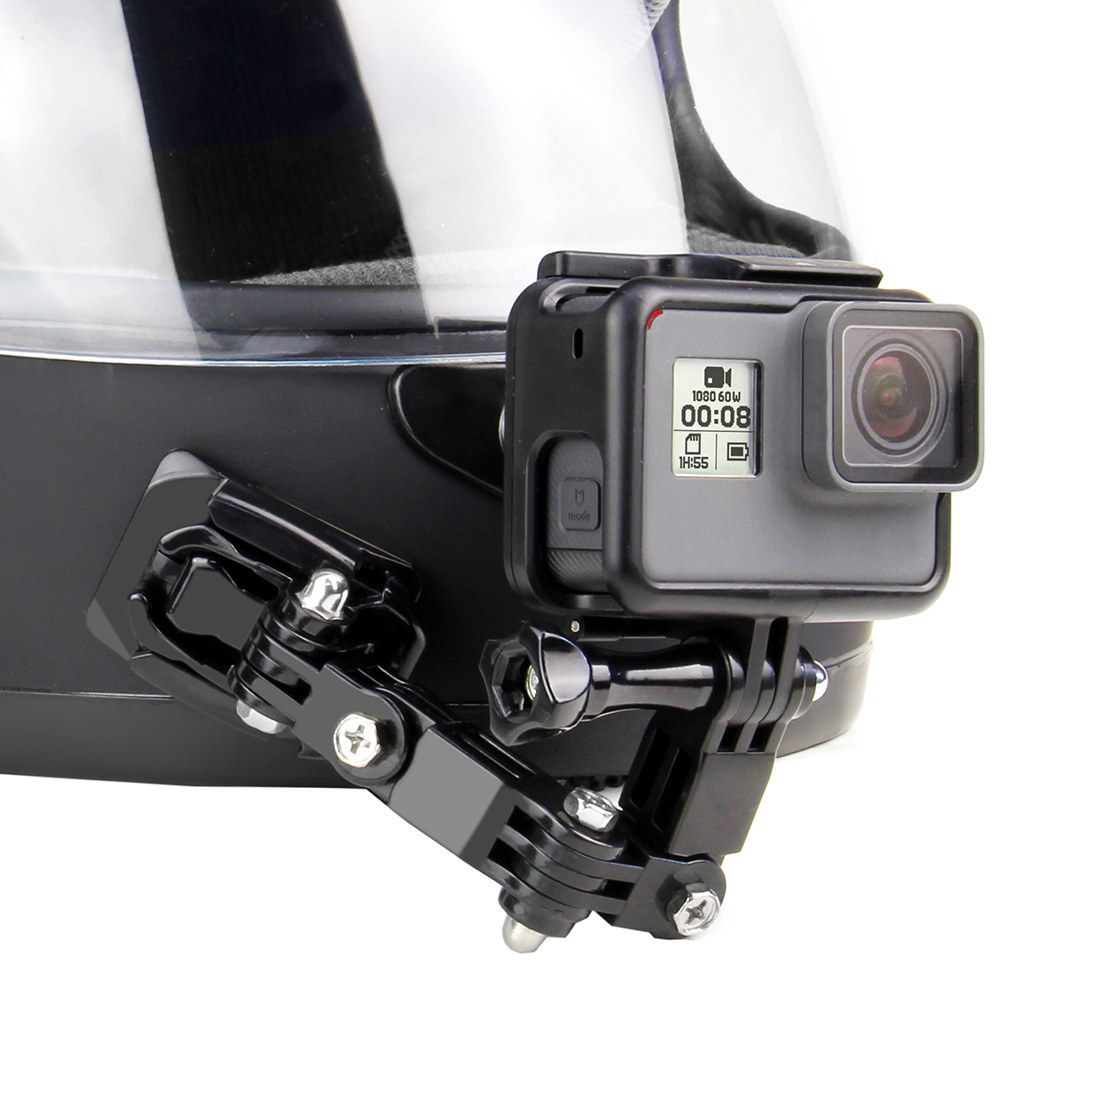 QYuan Flat Surface Mount Base,Adhesive Mounts,Solid Mount BuckleStand Rustproof Flat Surface Base for DJI Osmo Action Camera